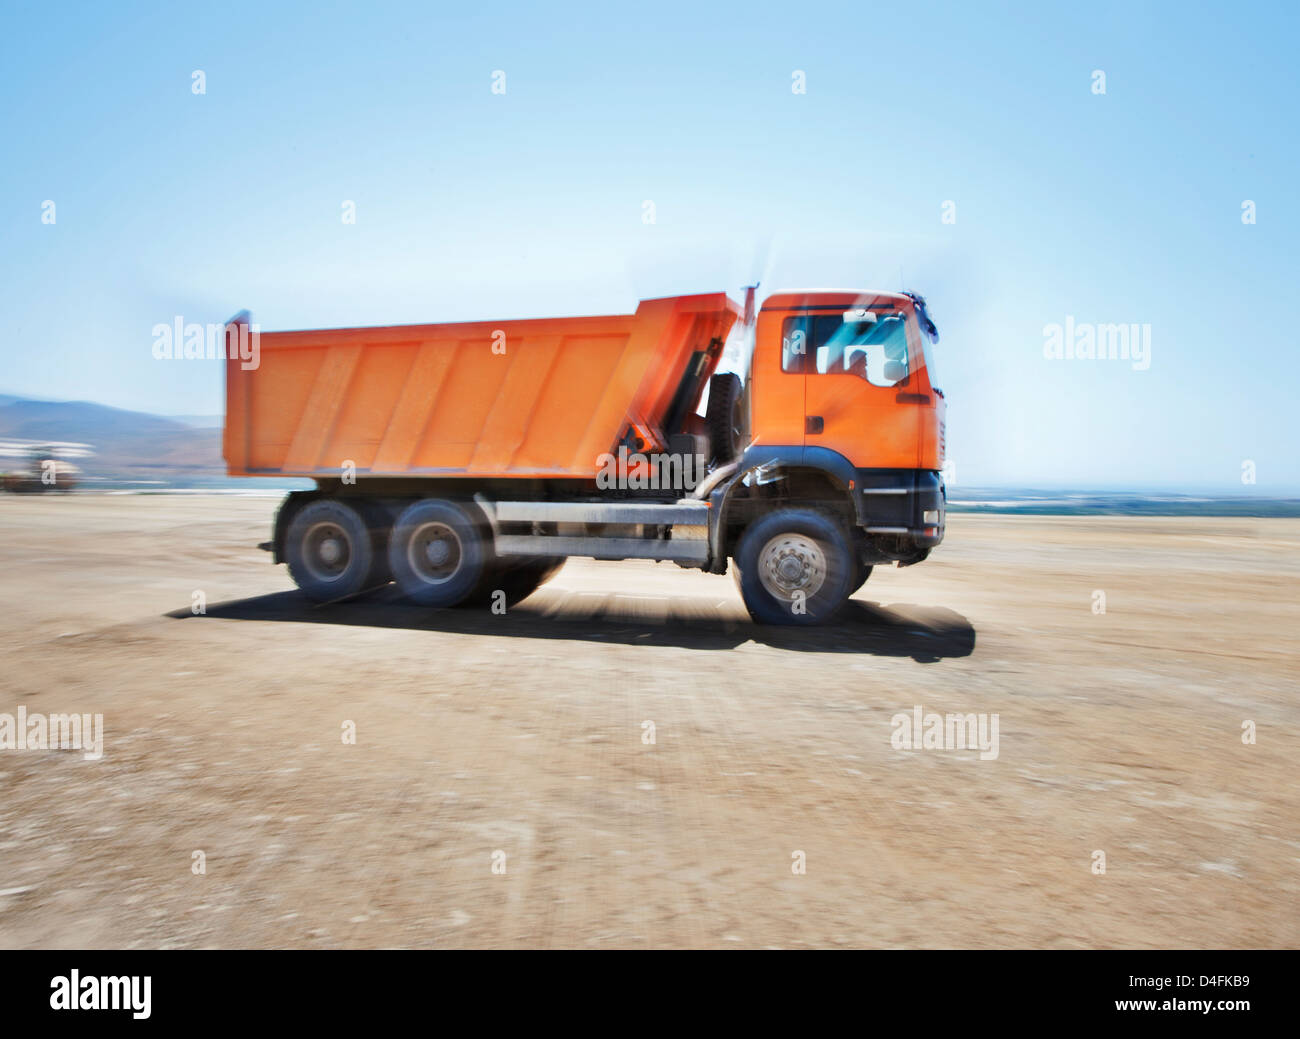 Blurred view of truck on site - Stock Image